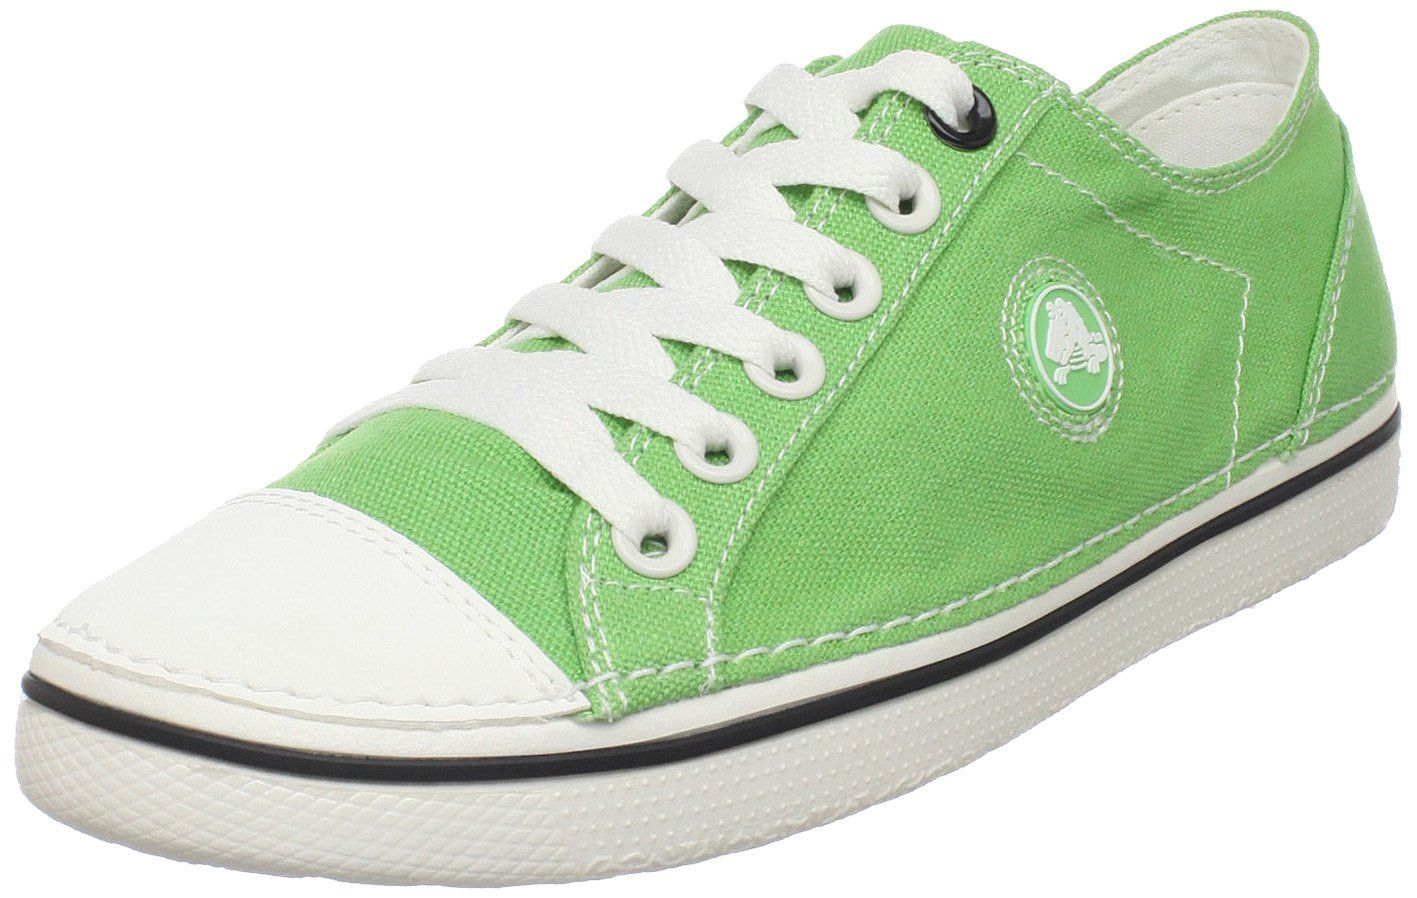 08f0c78aa1ab Crocs that look like Converse fishheads... in GREEN!!